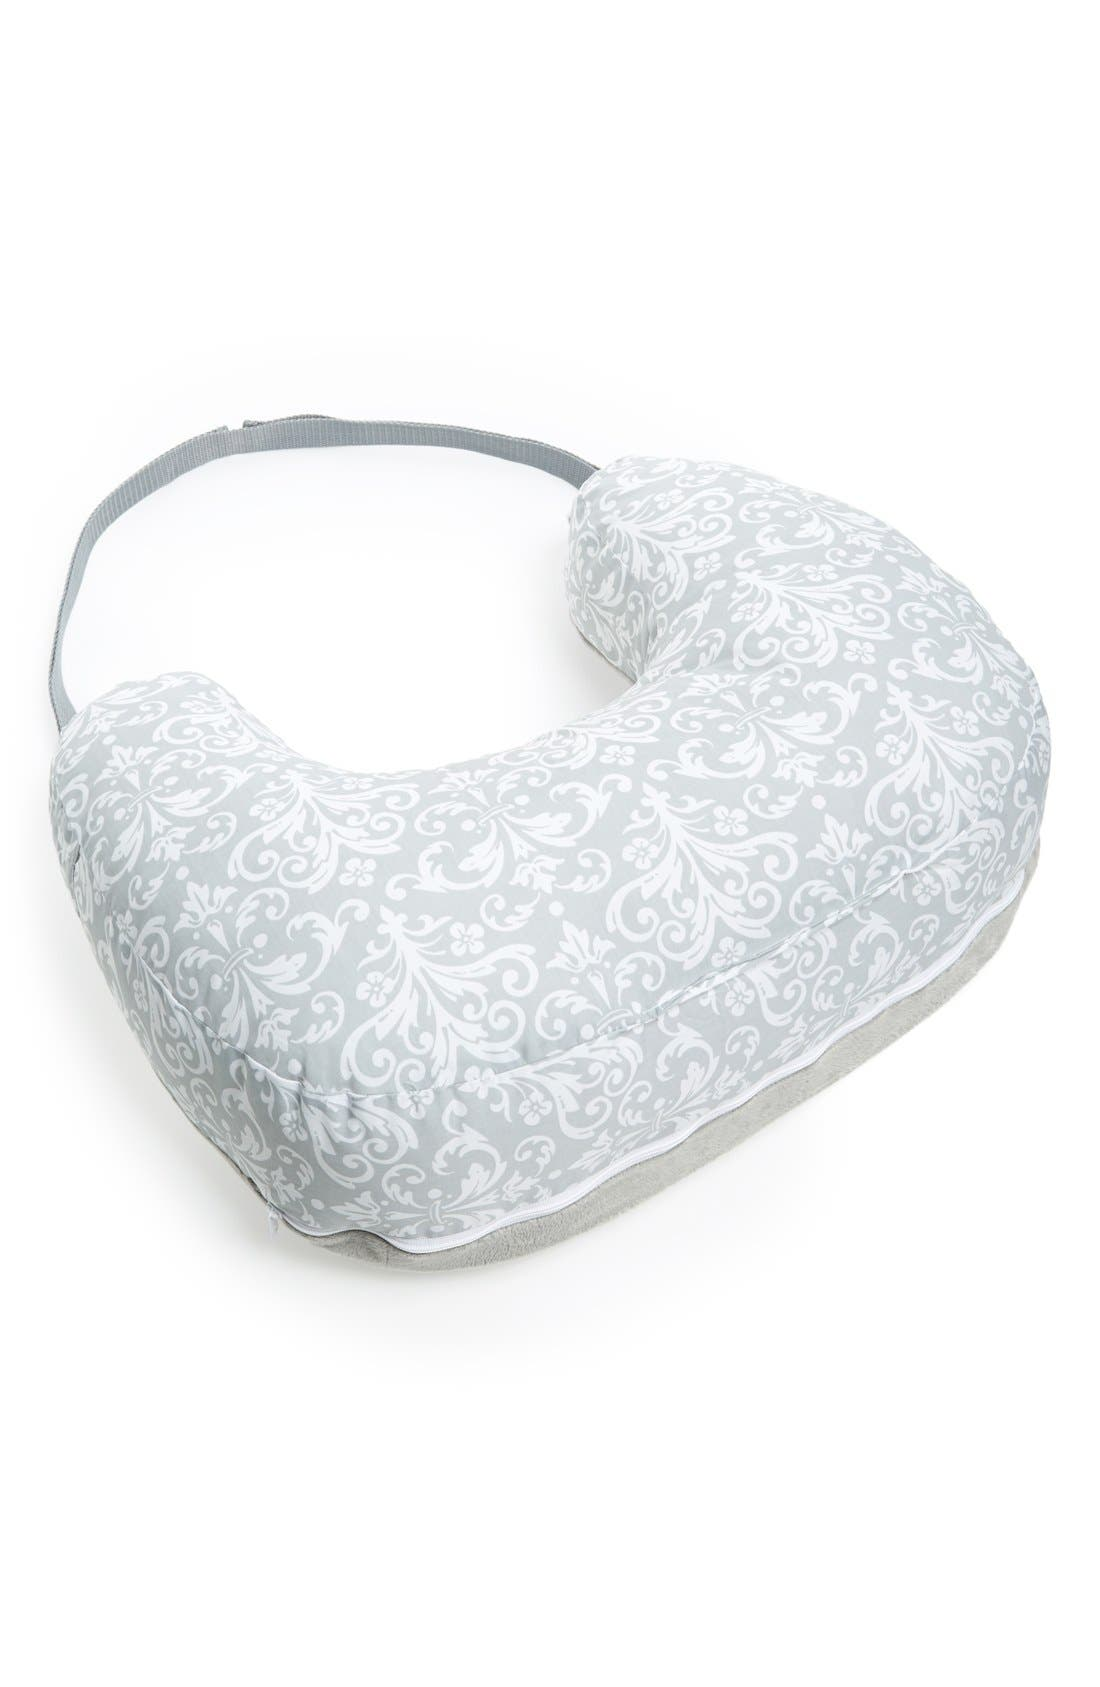 Two Sided Breastfeeding Pillow & Slipcover by Boppy